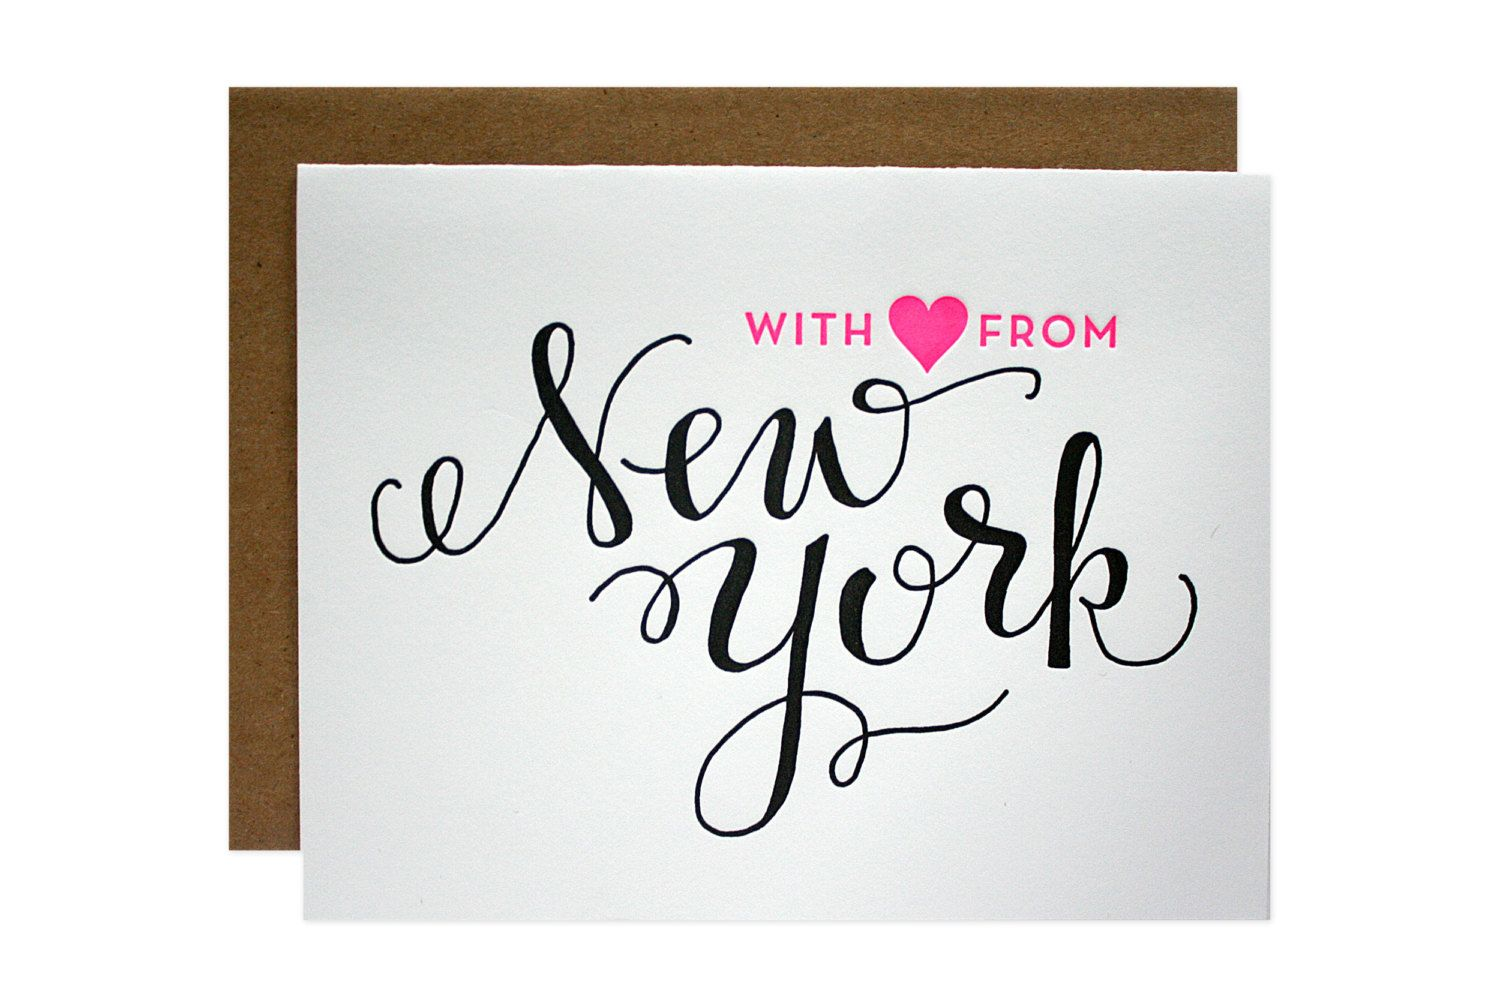 With ❤️ from New York card // Parrot Design Studio on Etsy